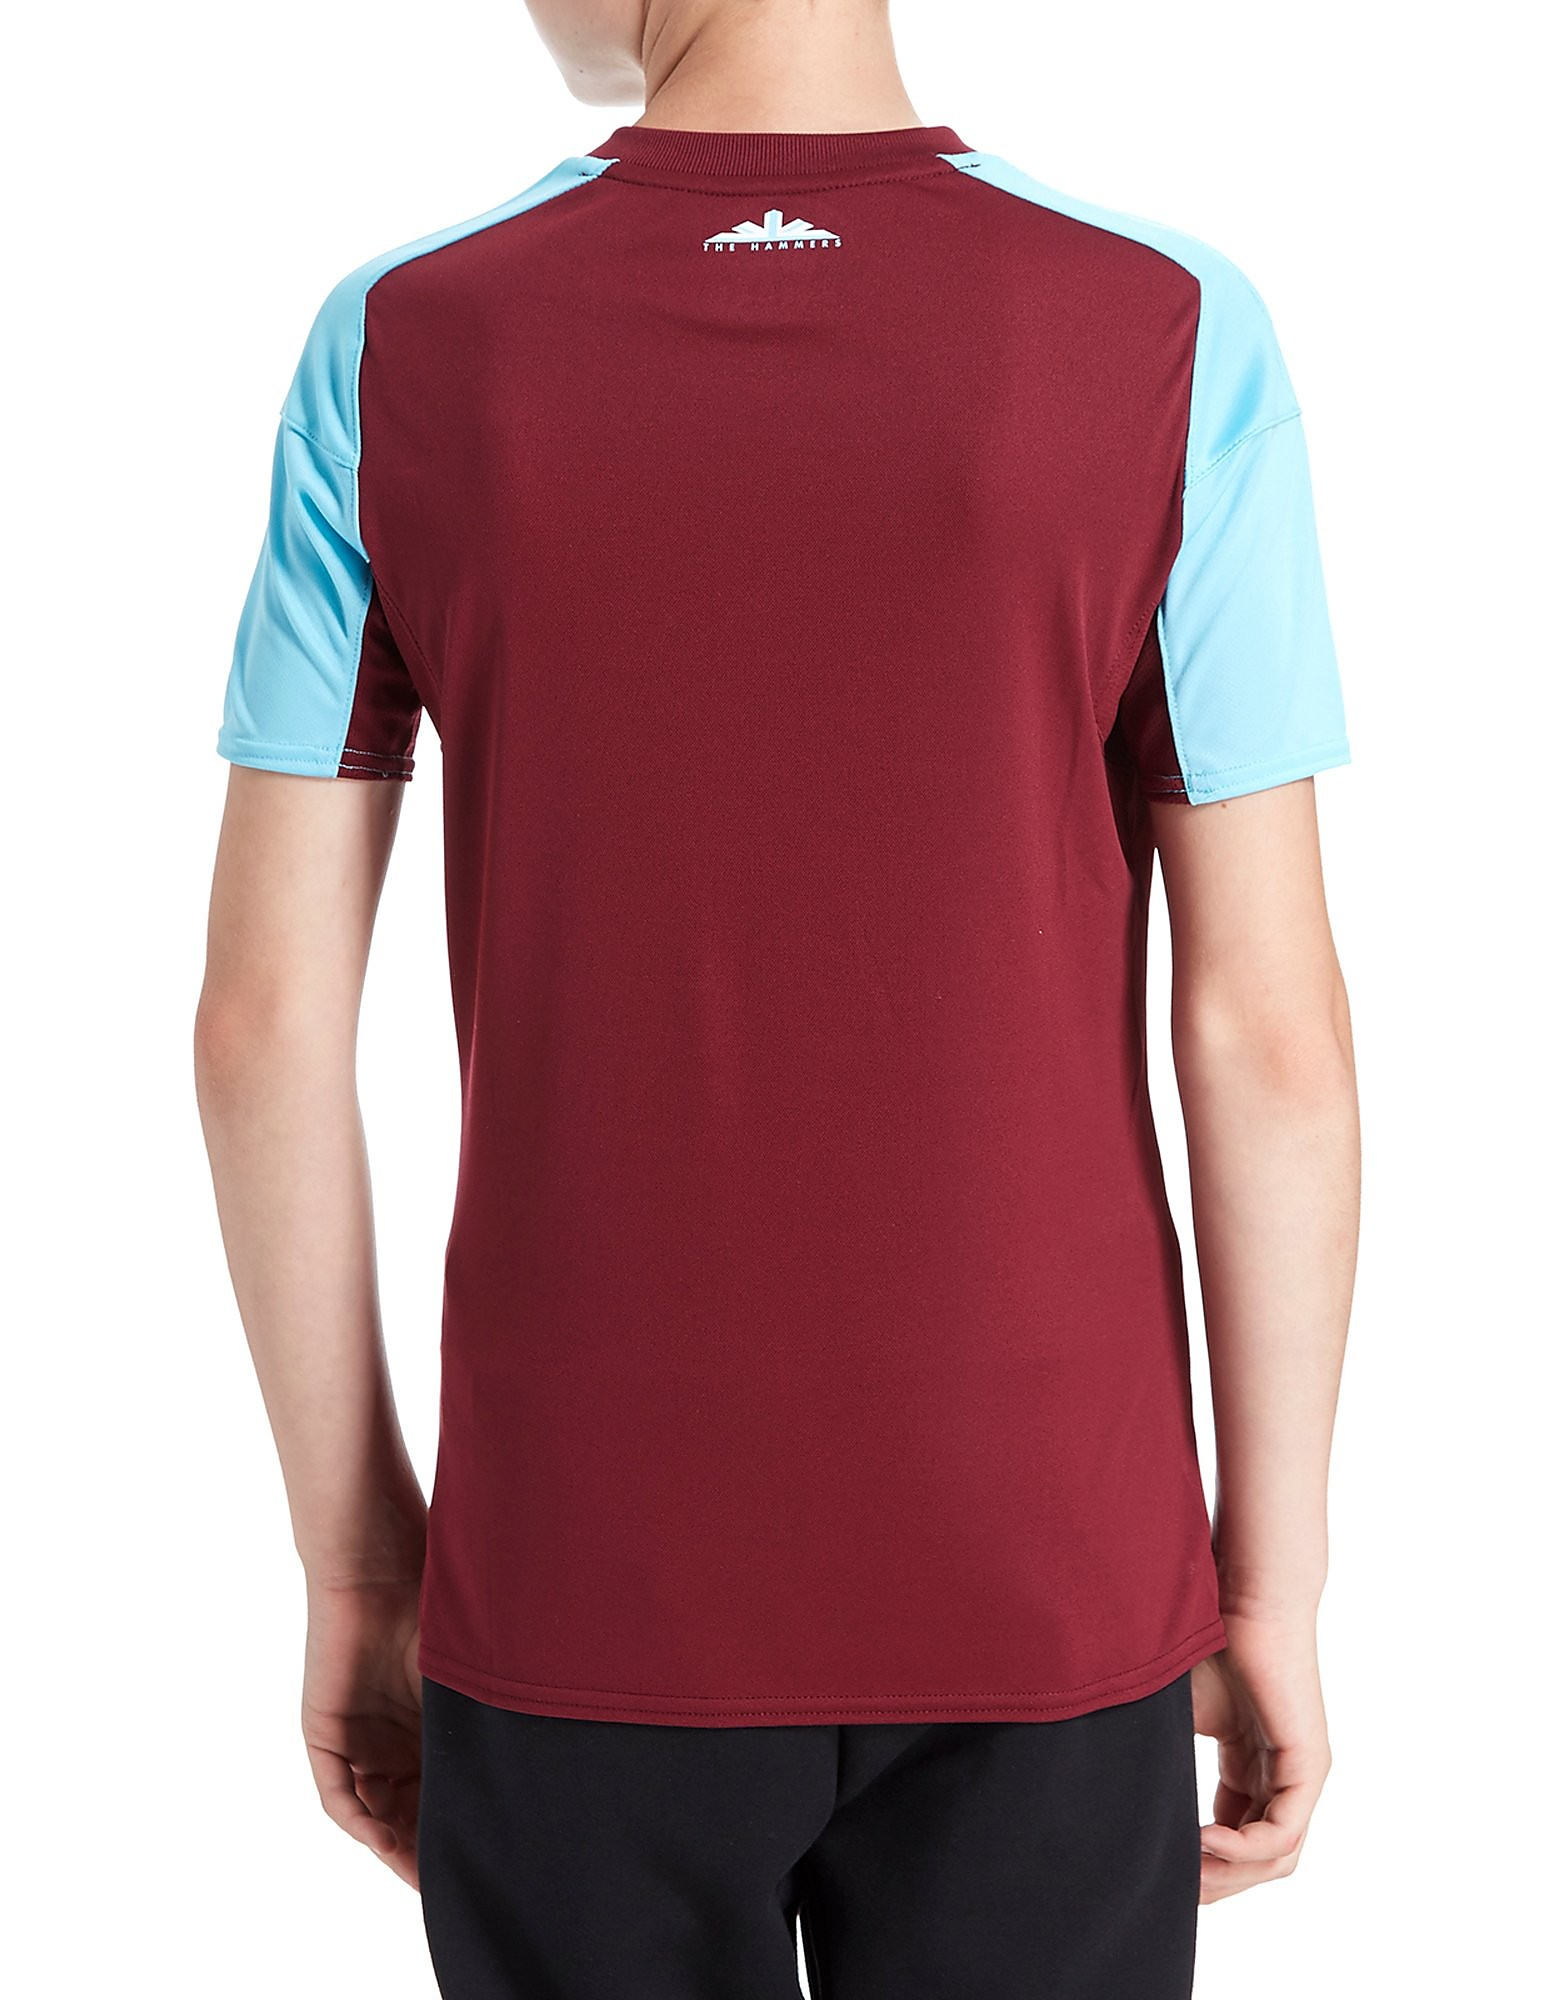 Umbro West Ham United 2017/18 Home Shirt Jnr PRE ORDER